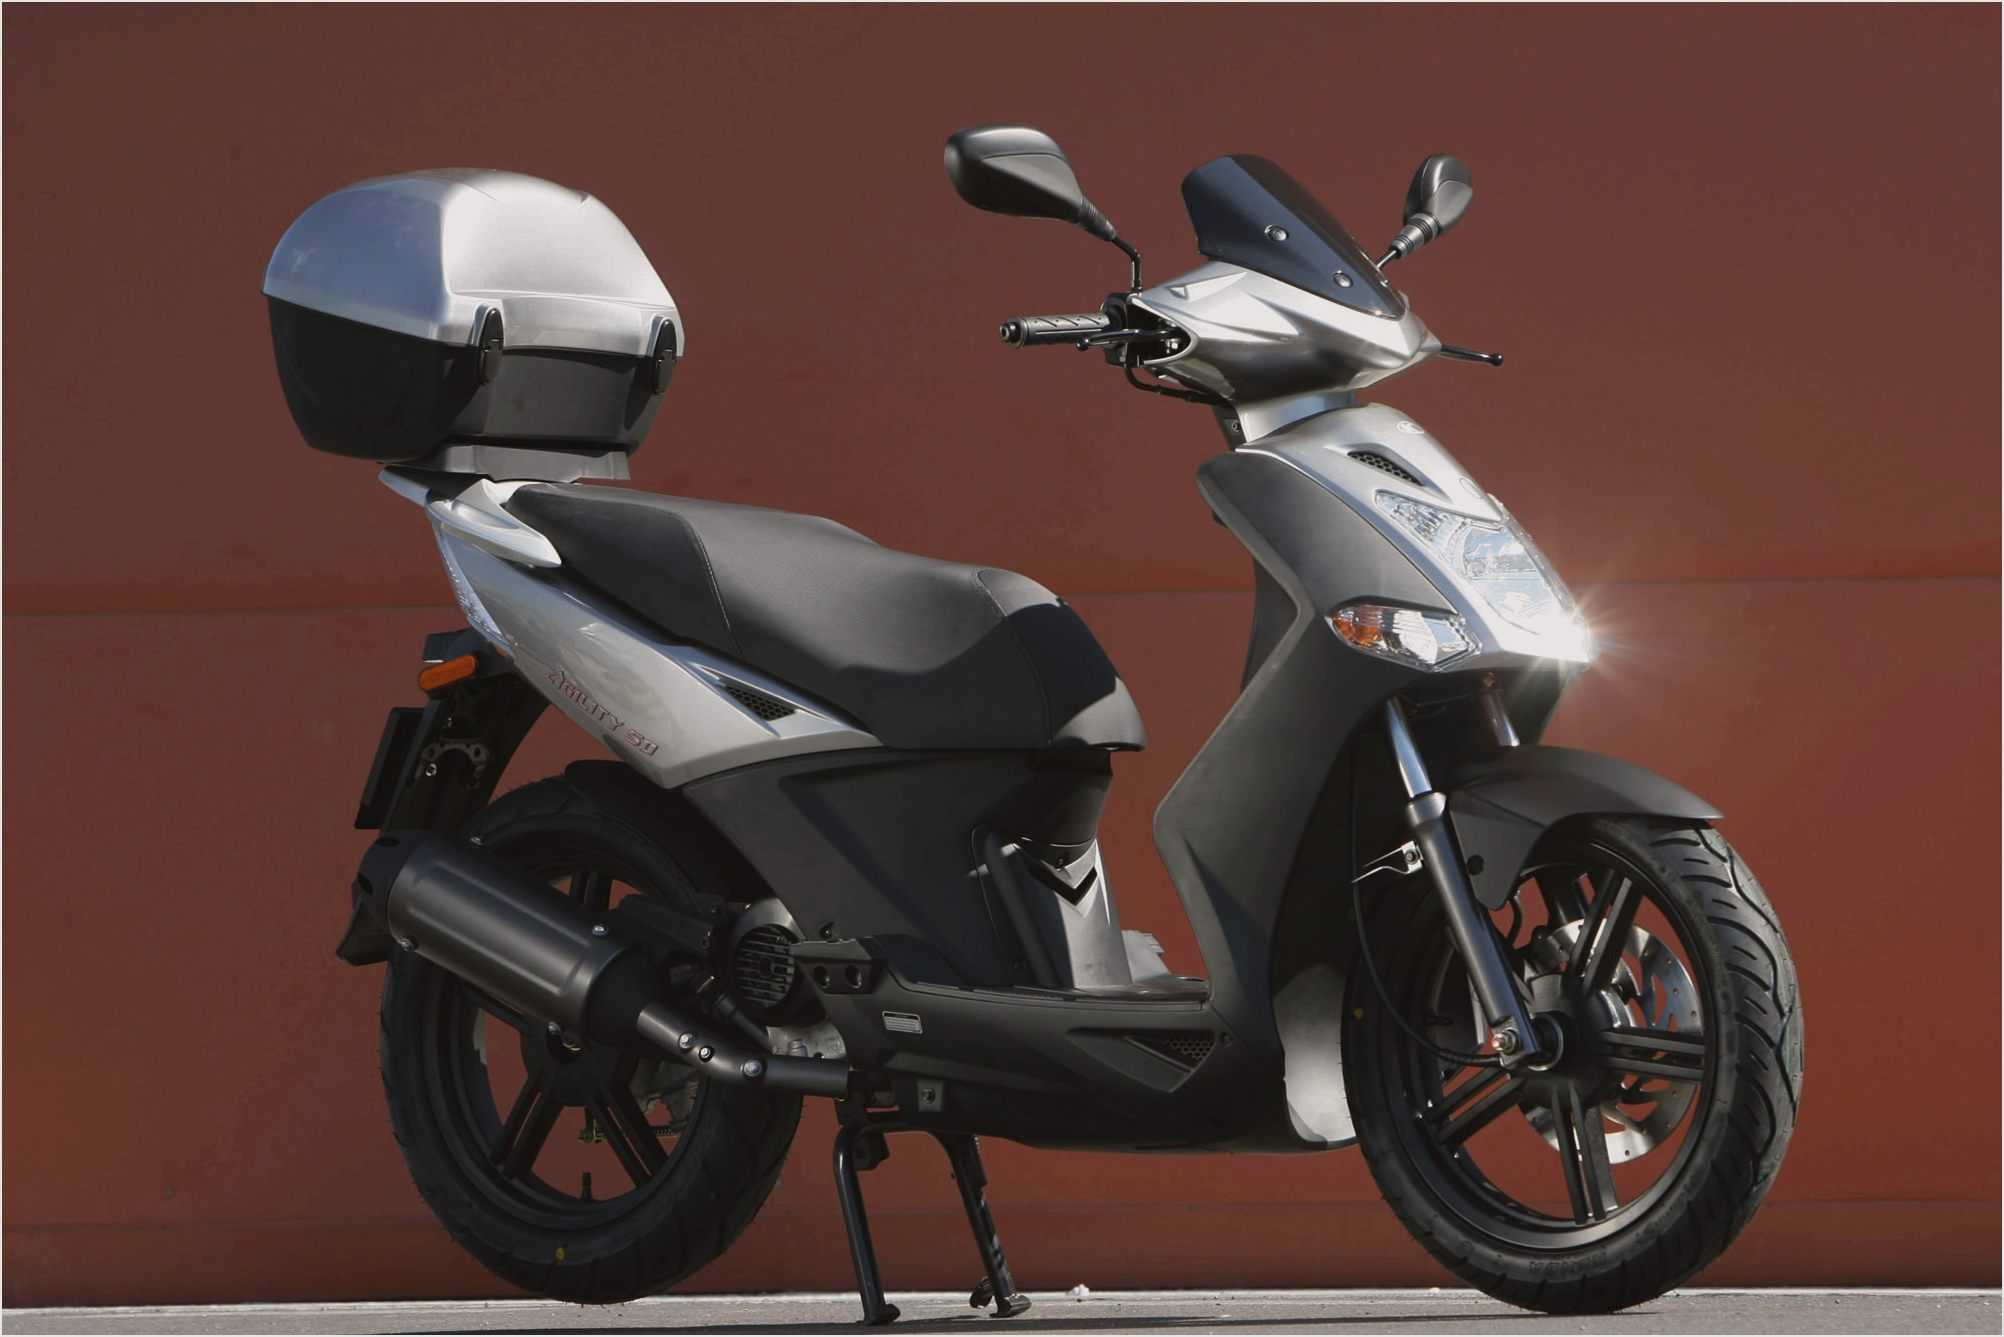 Kymco Agility 50 2007 images #100892